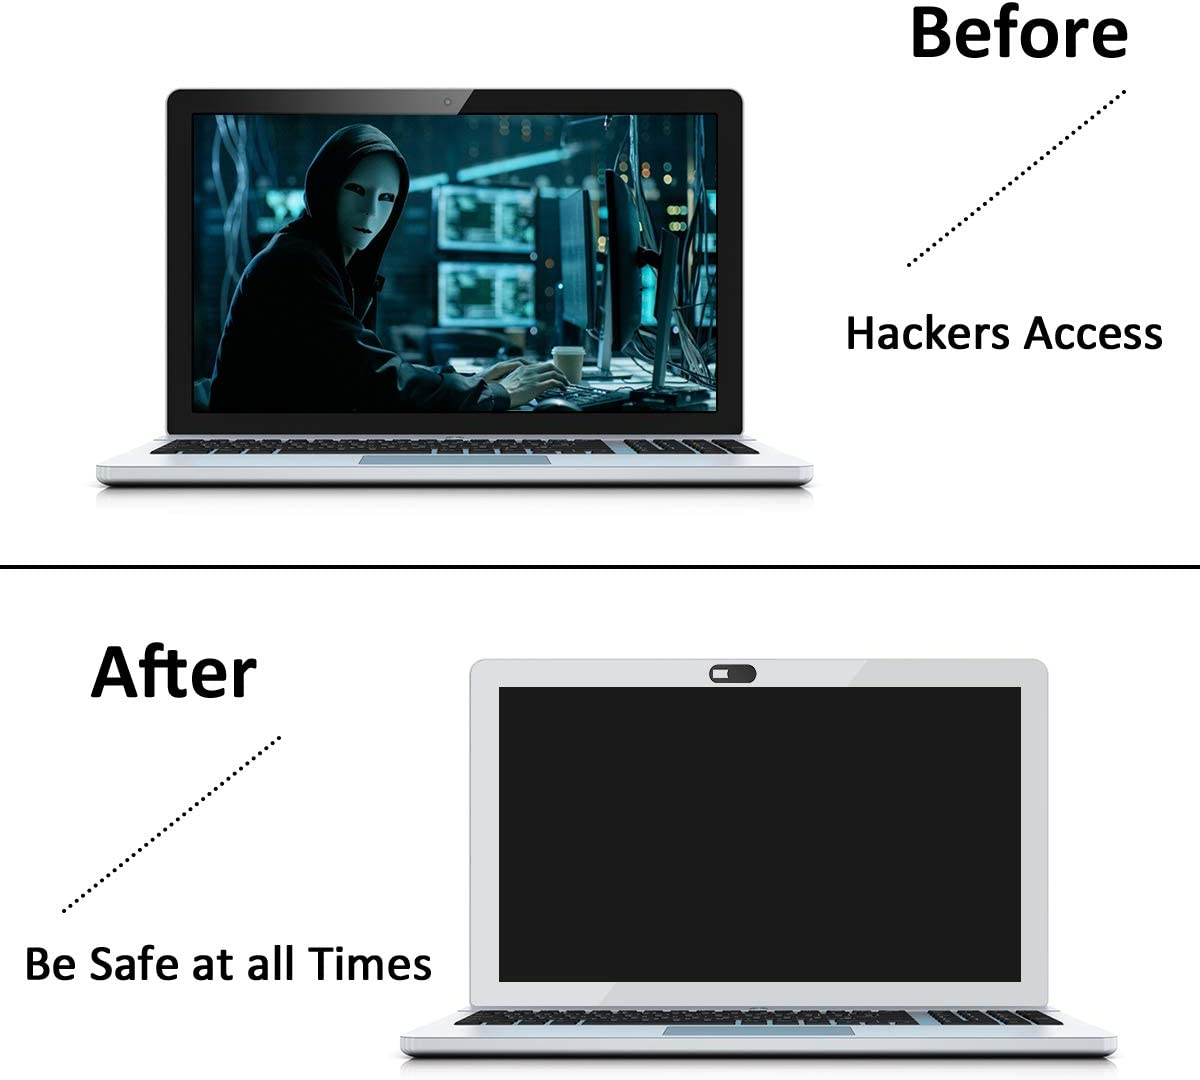 Tablets Computer Smartphone Tablets Etc MacBook Pro 6 Pack Protect Your Privacy /& Security w//2 Designs PC Webcam Cover Slide for Privacy iPad - Ultra Thin Web Camera Cover for Laptops